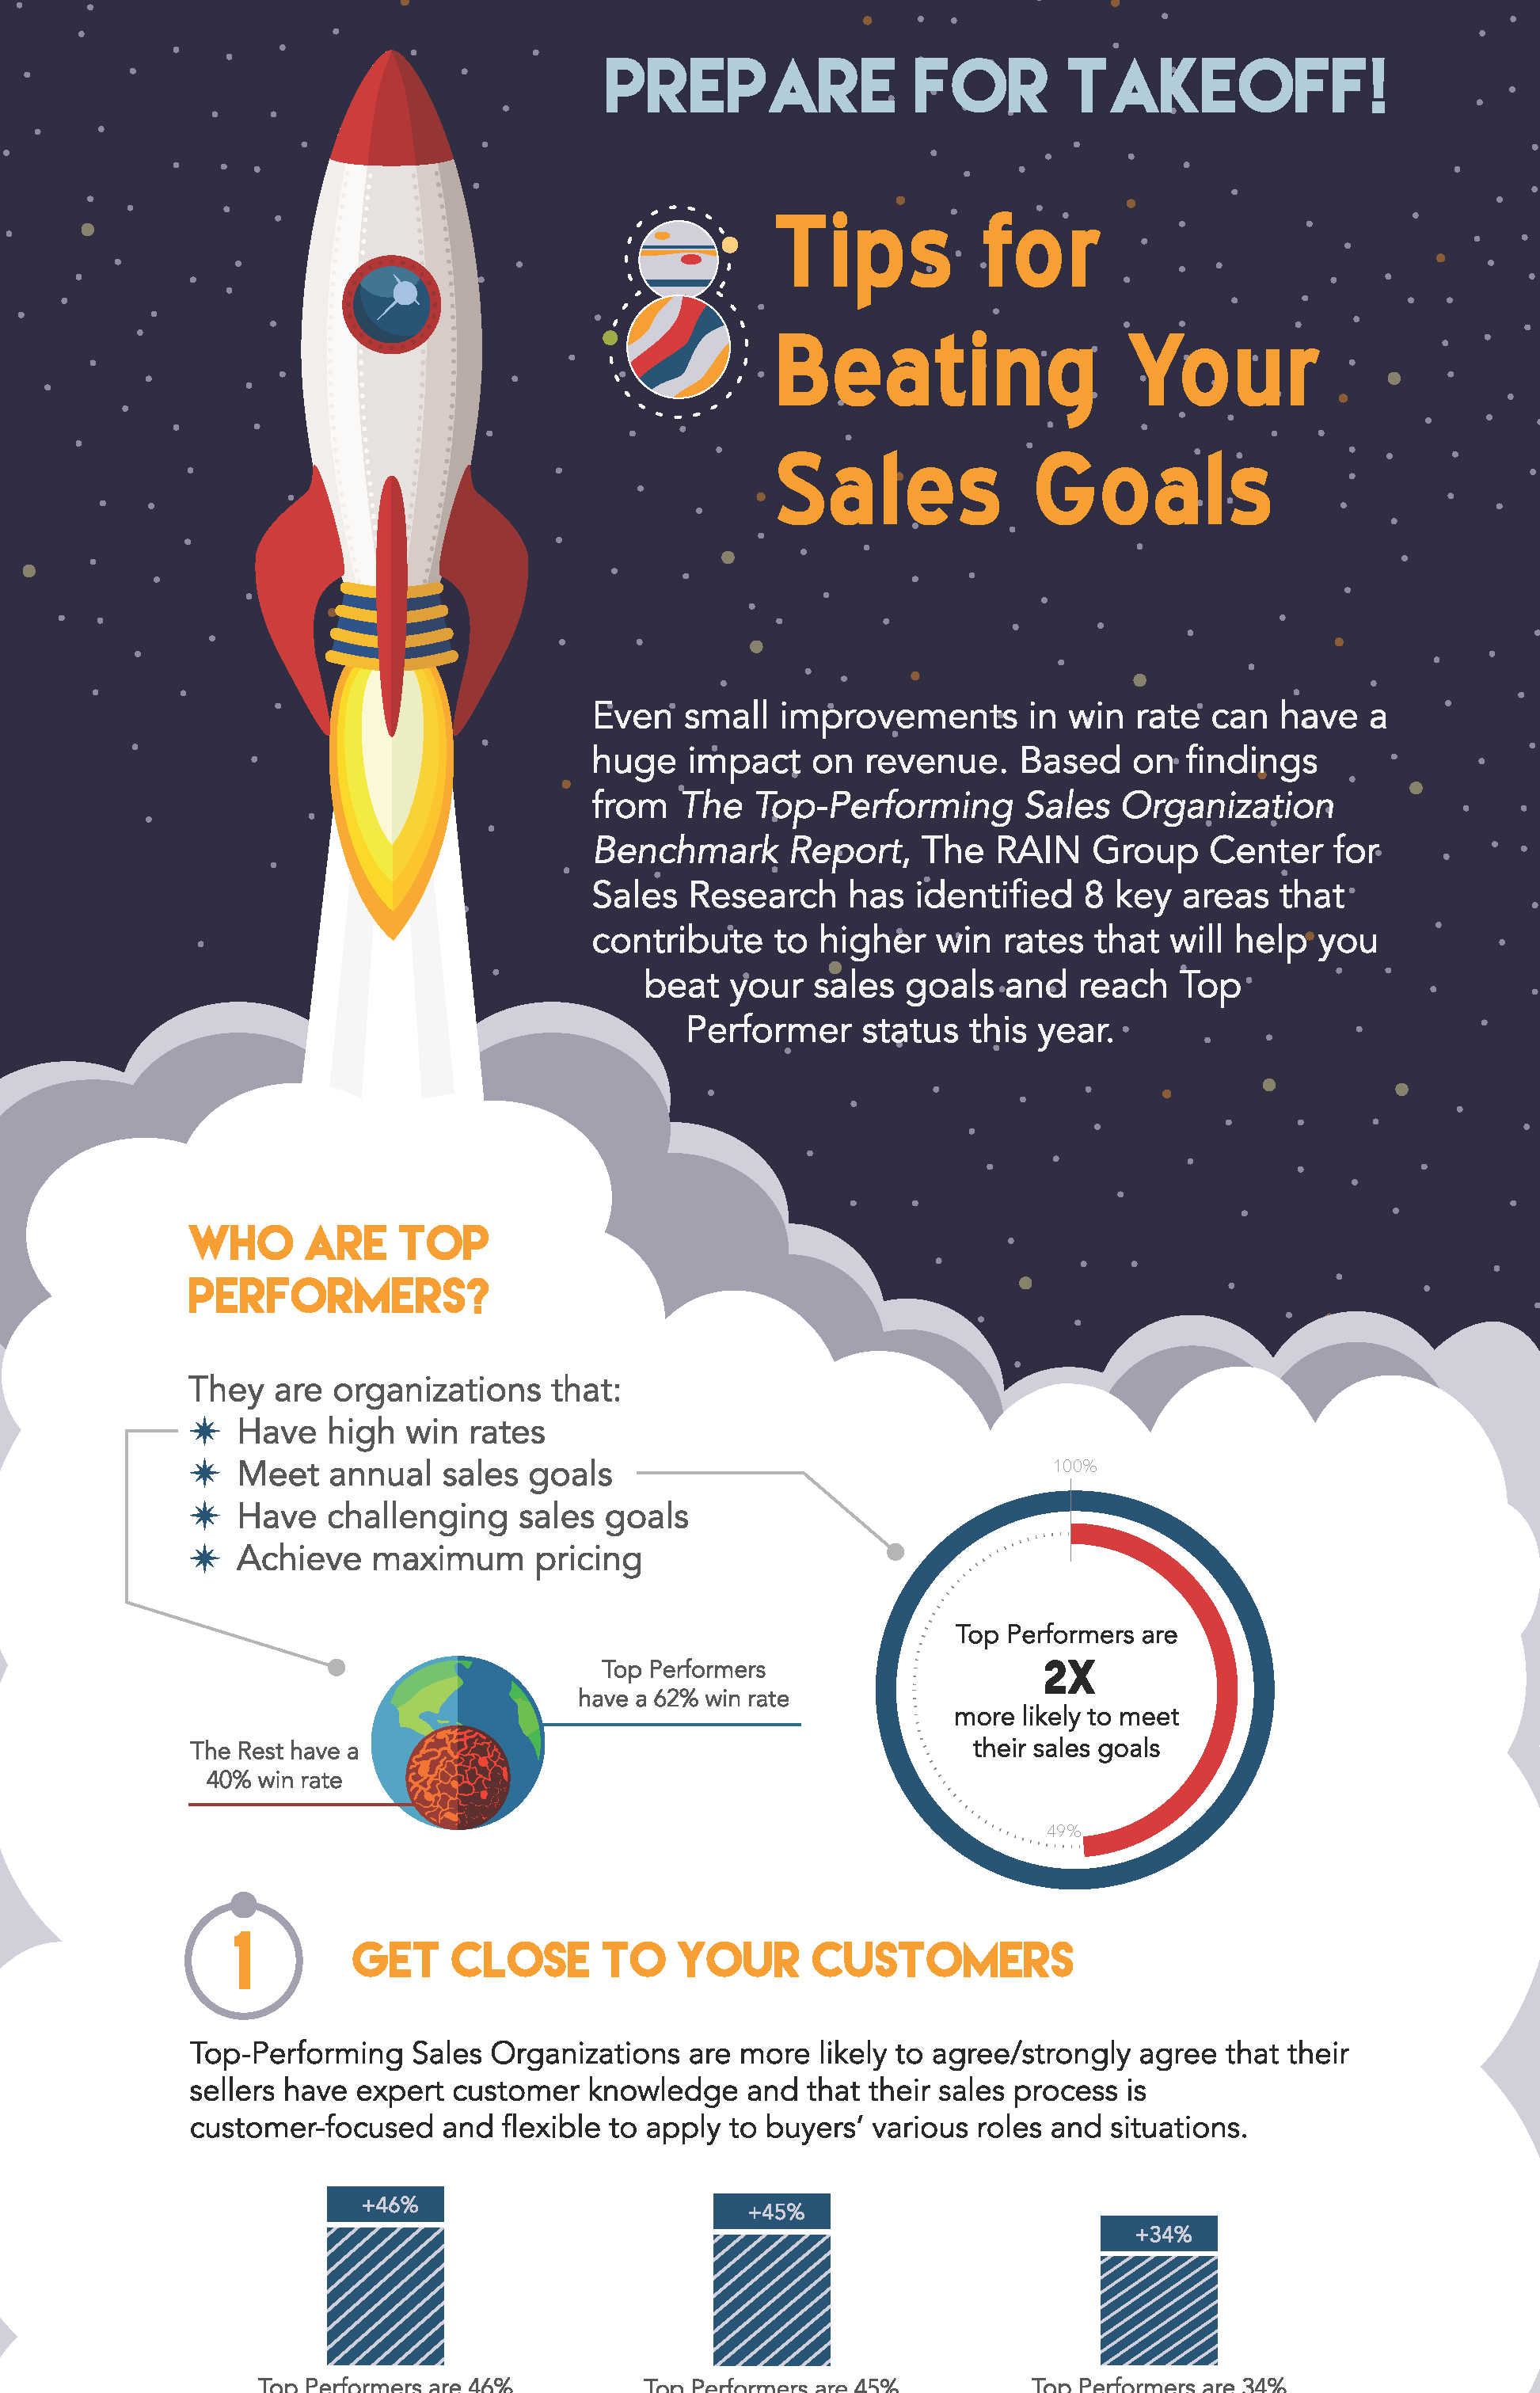 8 Tips for Beating Your Sales Goals Infographic